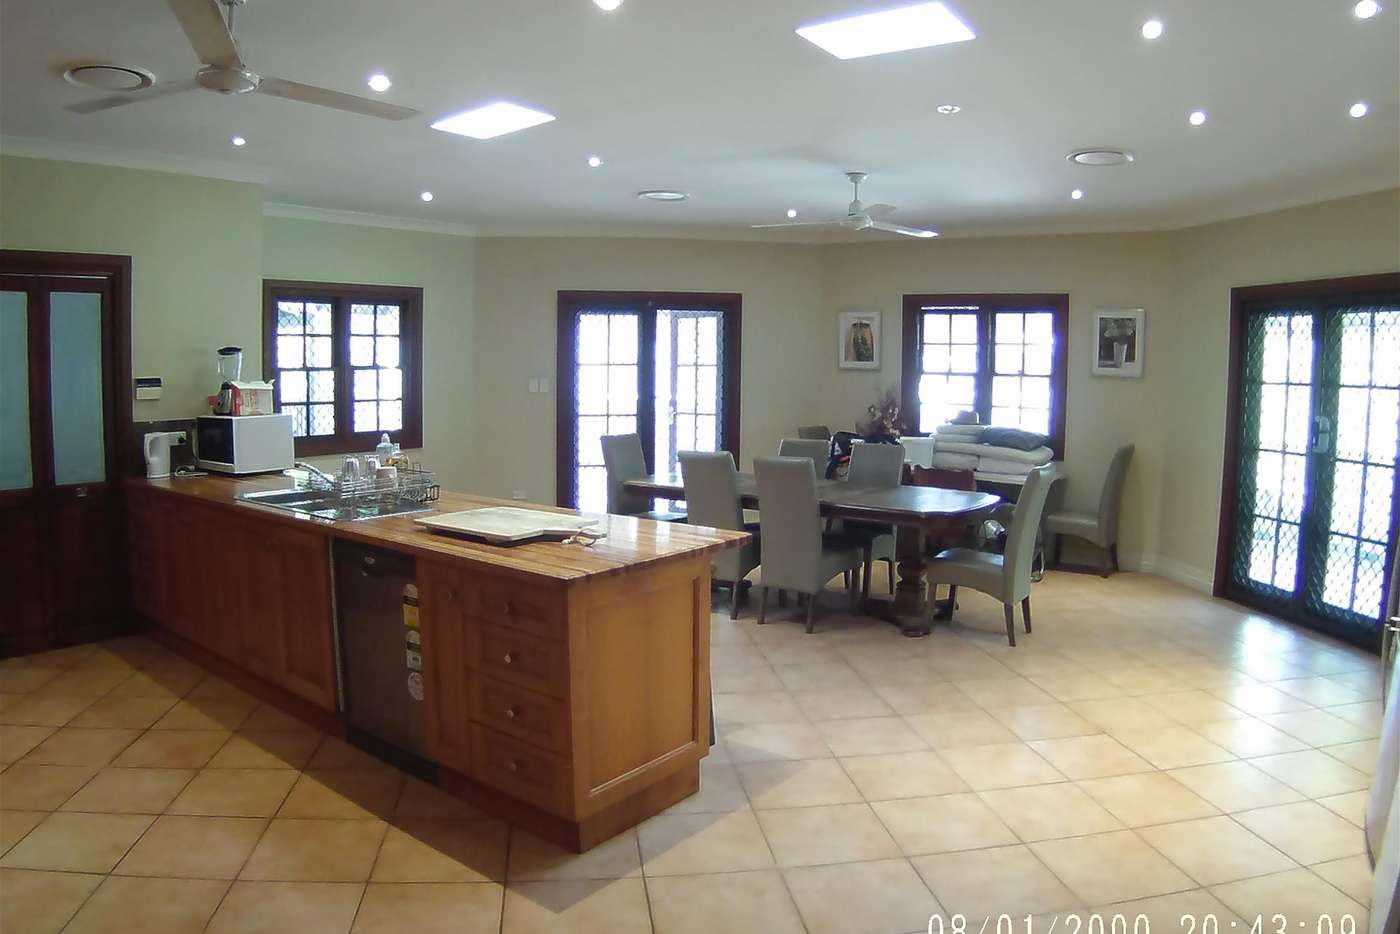 Seventh view of Homely house listing, 0 Gardner Road, Rochedale QLD 4123